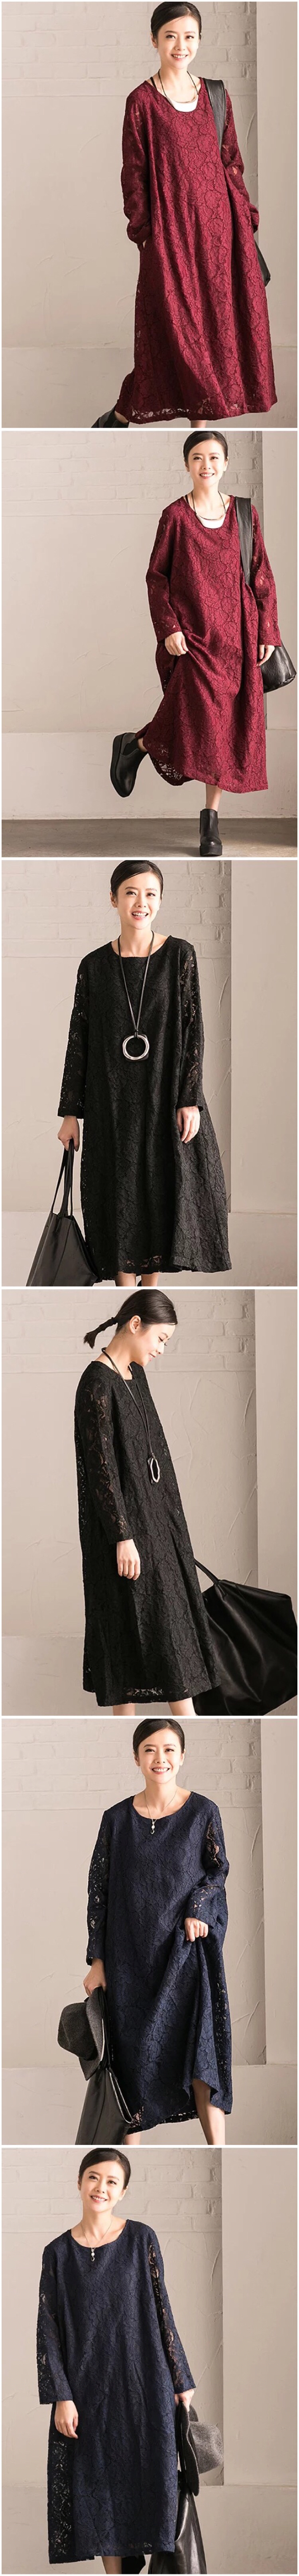 Redblackblue lace long dresses qa clothes u style